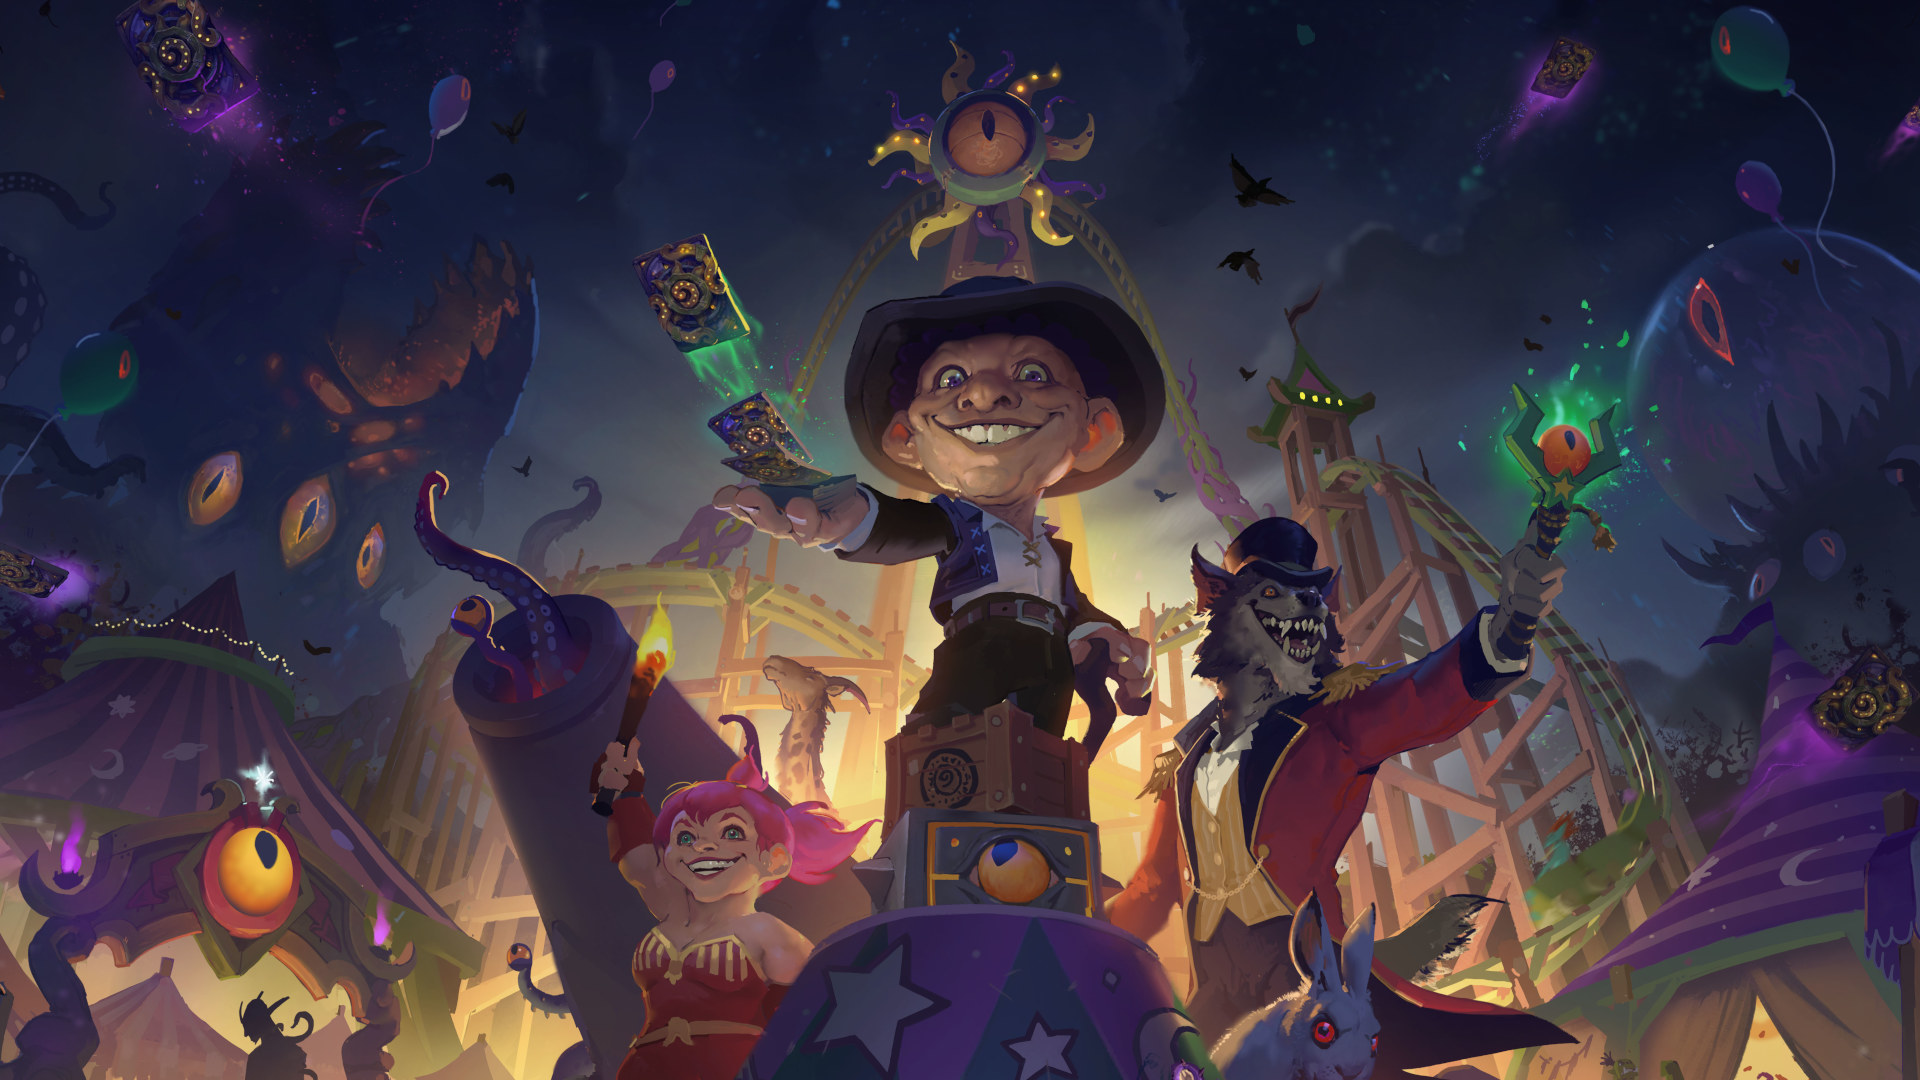 A spooky carnival in art for Hearthstone's Madness At The Darkmoon Faire expansion.